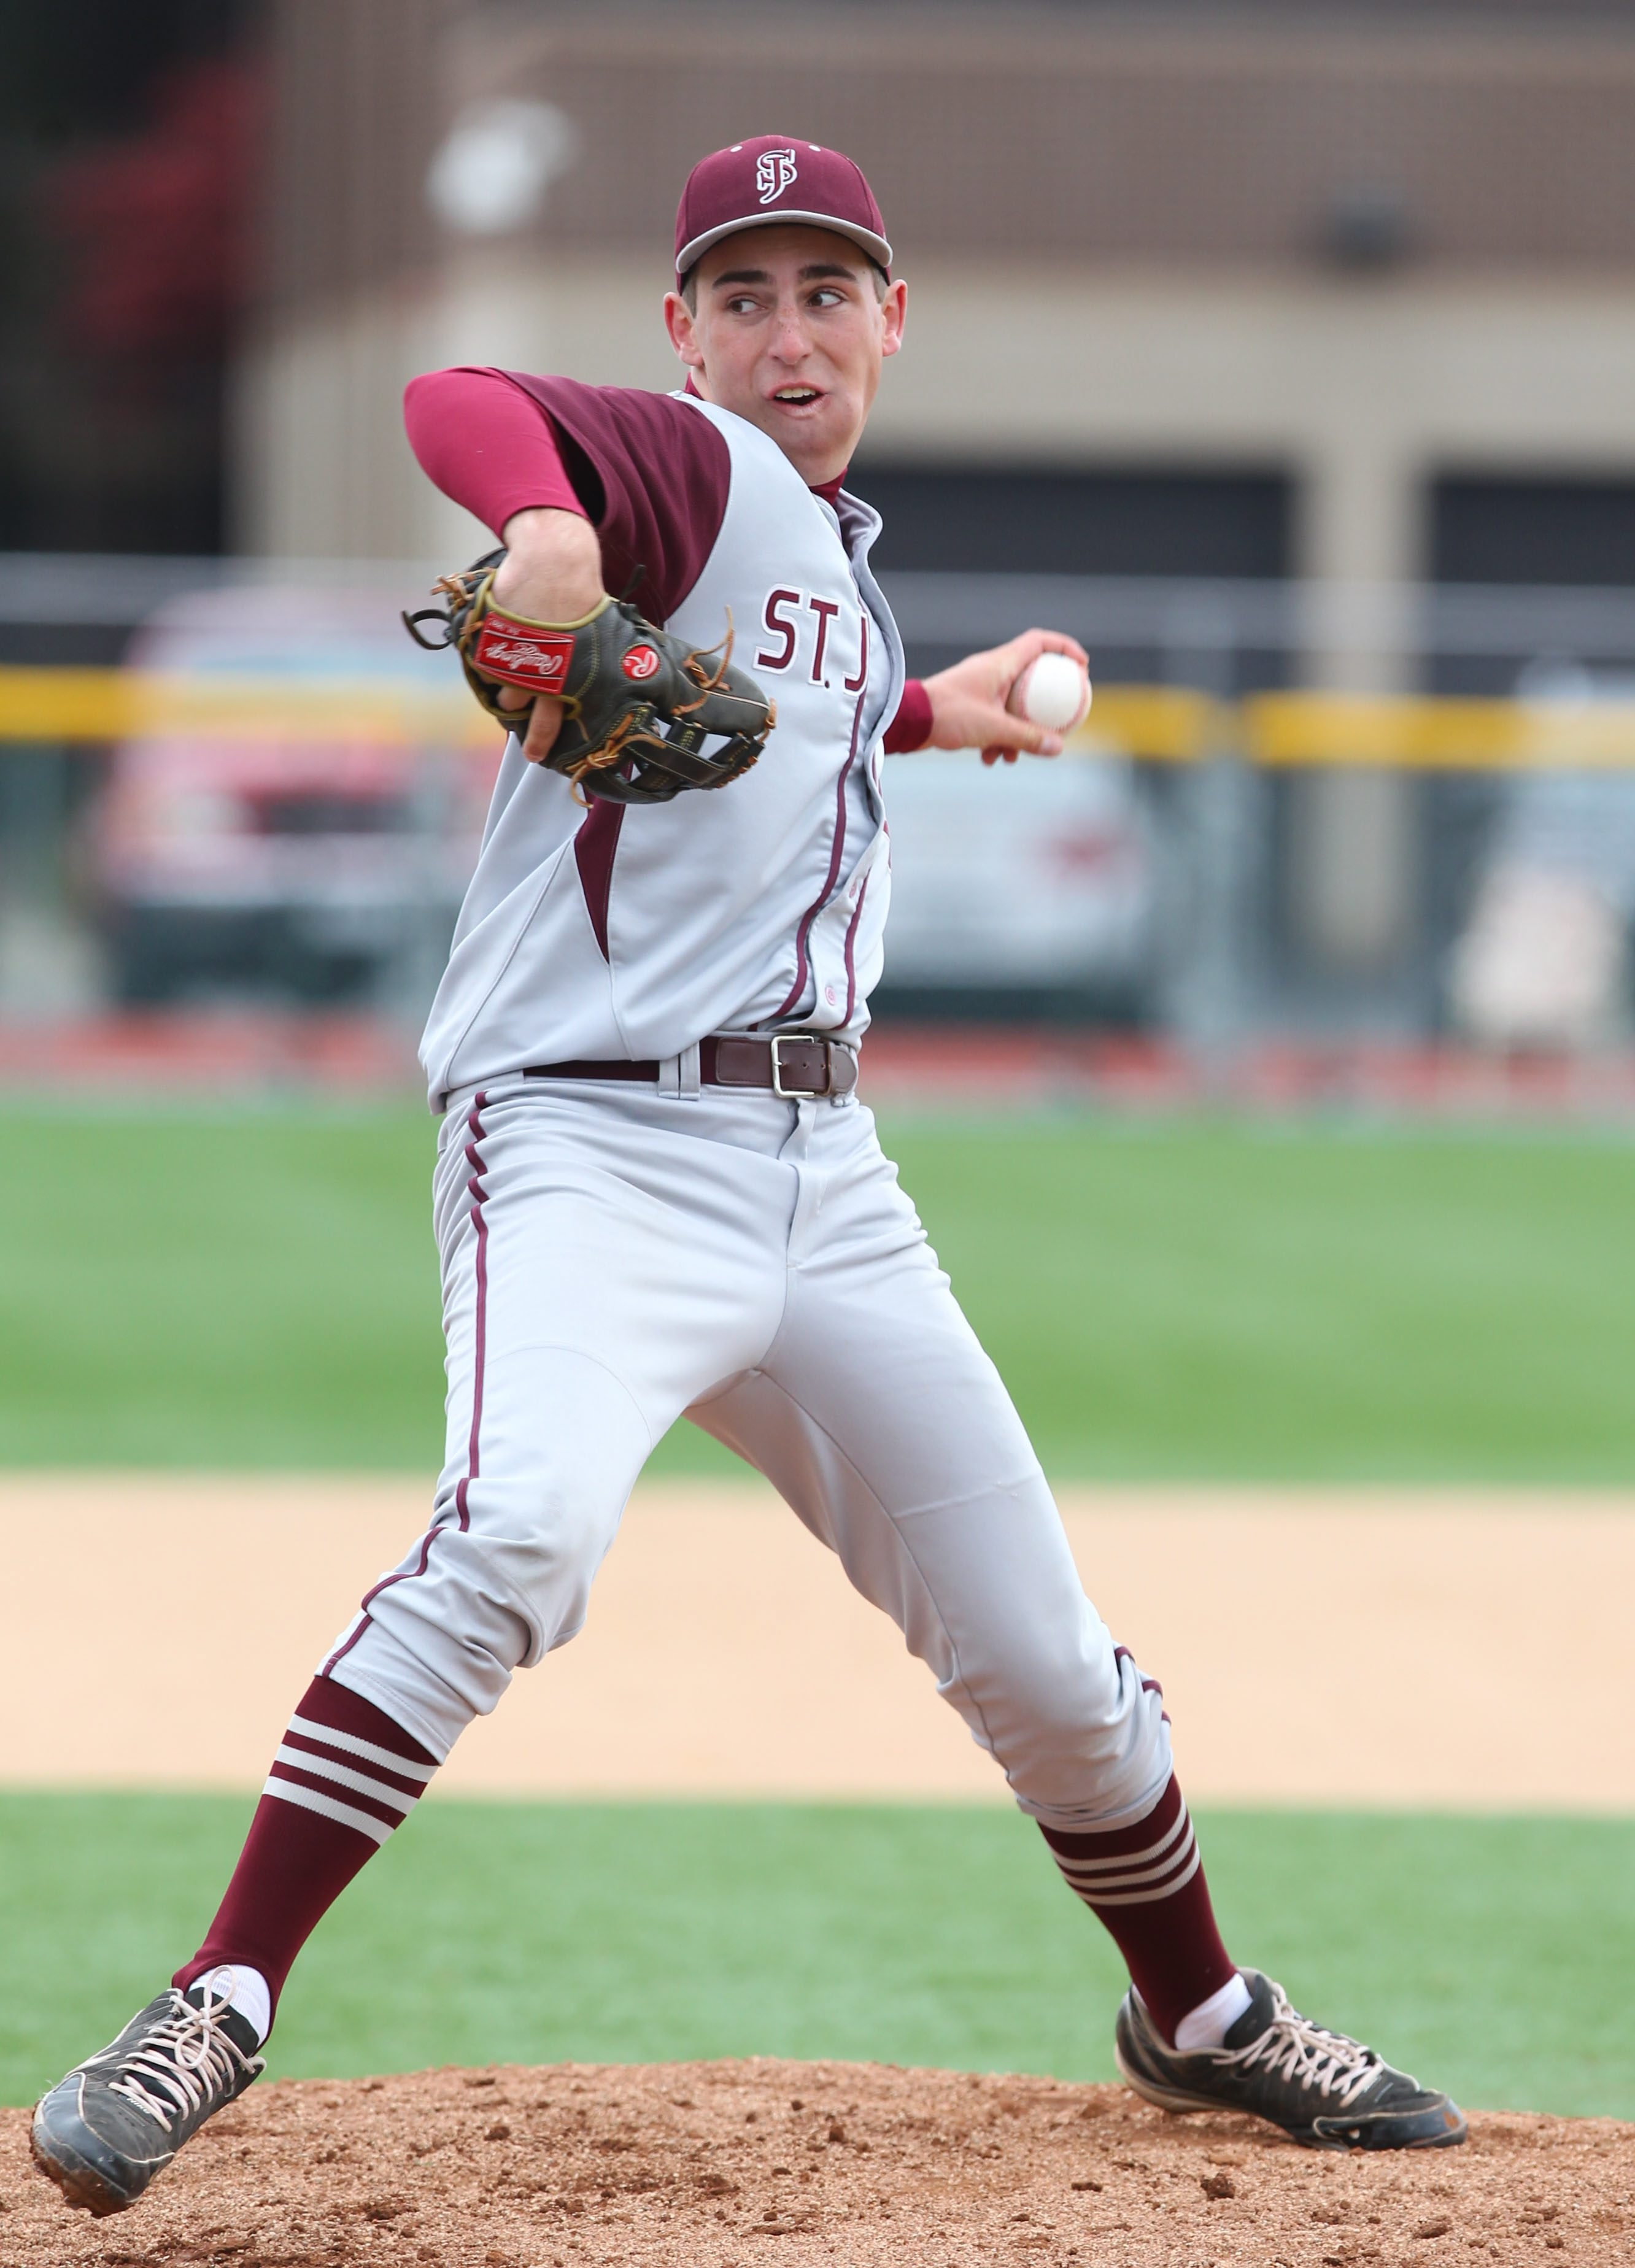 St. Joe's Bradley Kreppel tossed a two-hitter in a 12-0 shut out of visiting Nichols in Msgr. Martin Association baseball Friday.